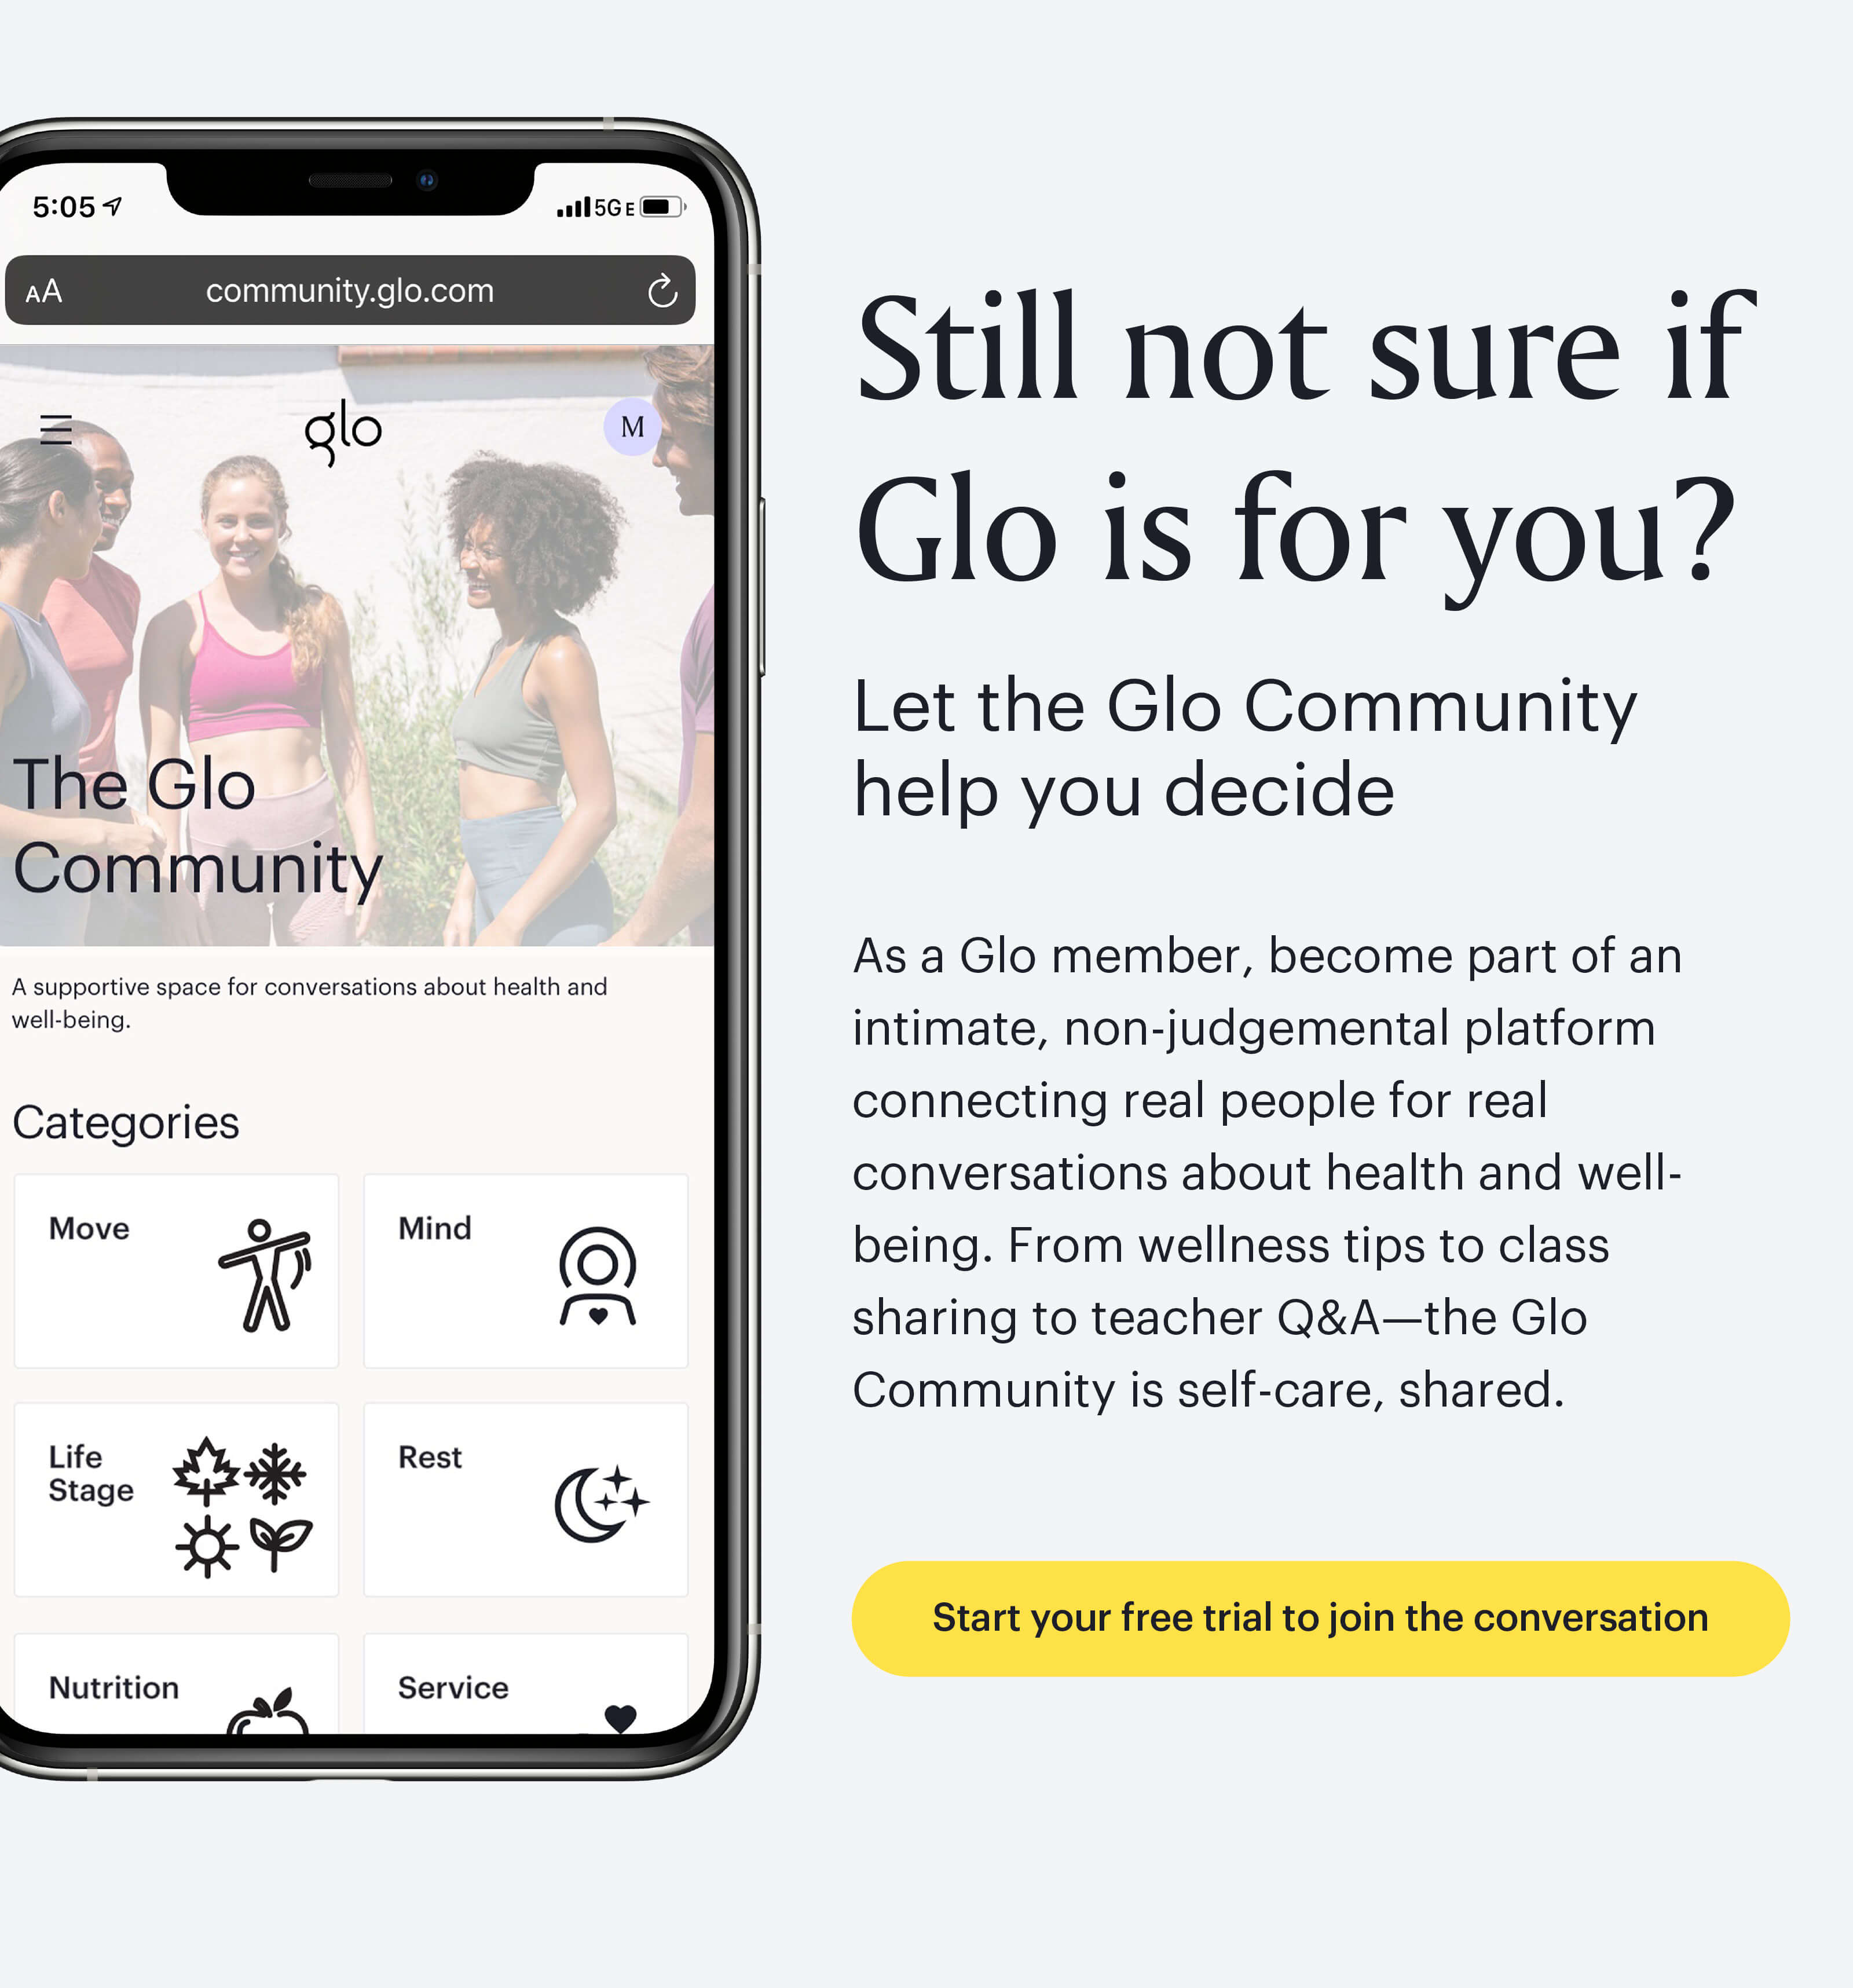 Still not sure if Glo is for you? Let the Glo Community help you decide. As a glo member, become part of an intimate, non-judgmental platform connecting real people for real conversations about health and well-being. From wellness tips to class haring to teacher Q&A – the Glo Community is self-care, shared. Start your free trial to join the conversation.